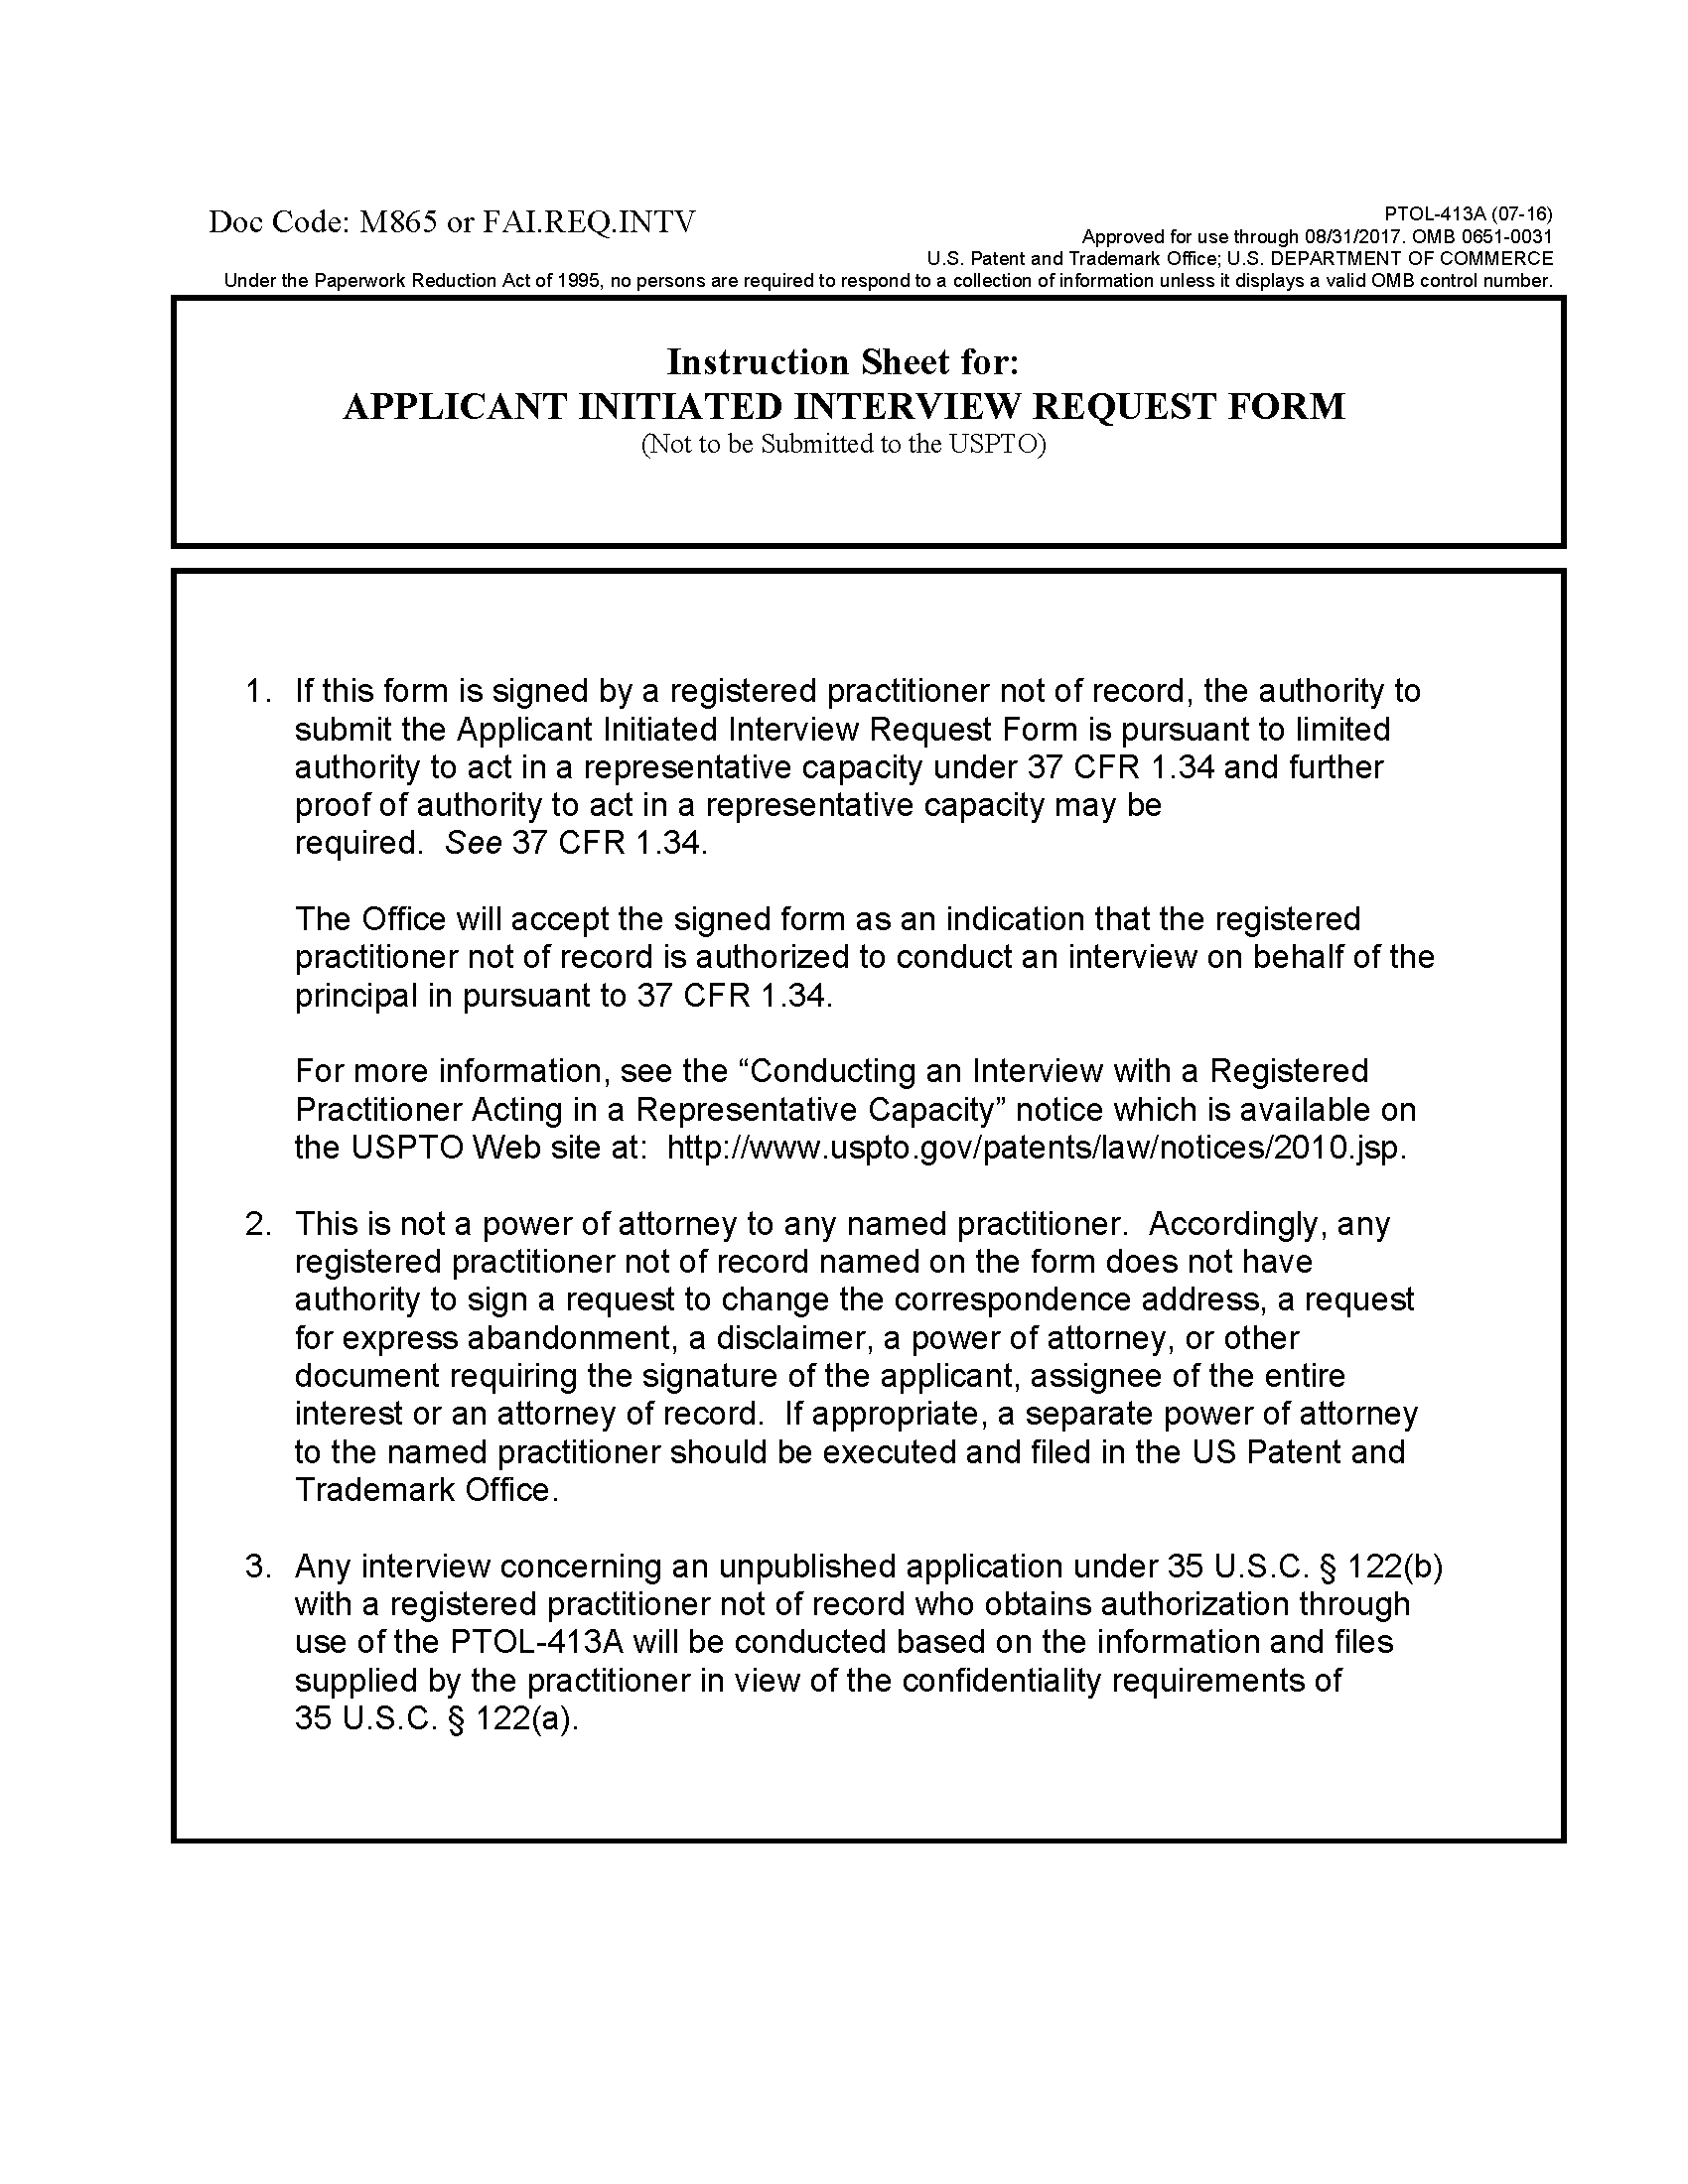 713 interviews form ptol 413a instruction sheet for applicant initiated interview request form